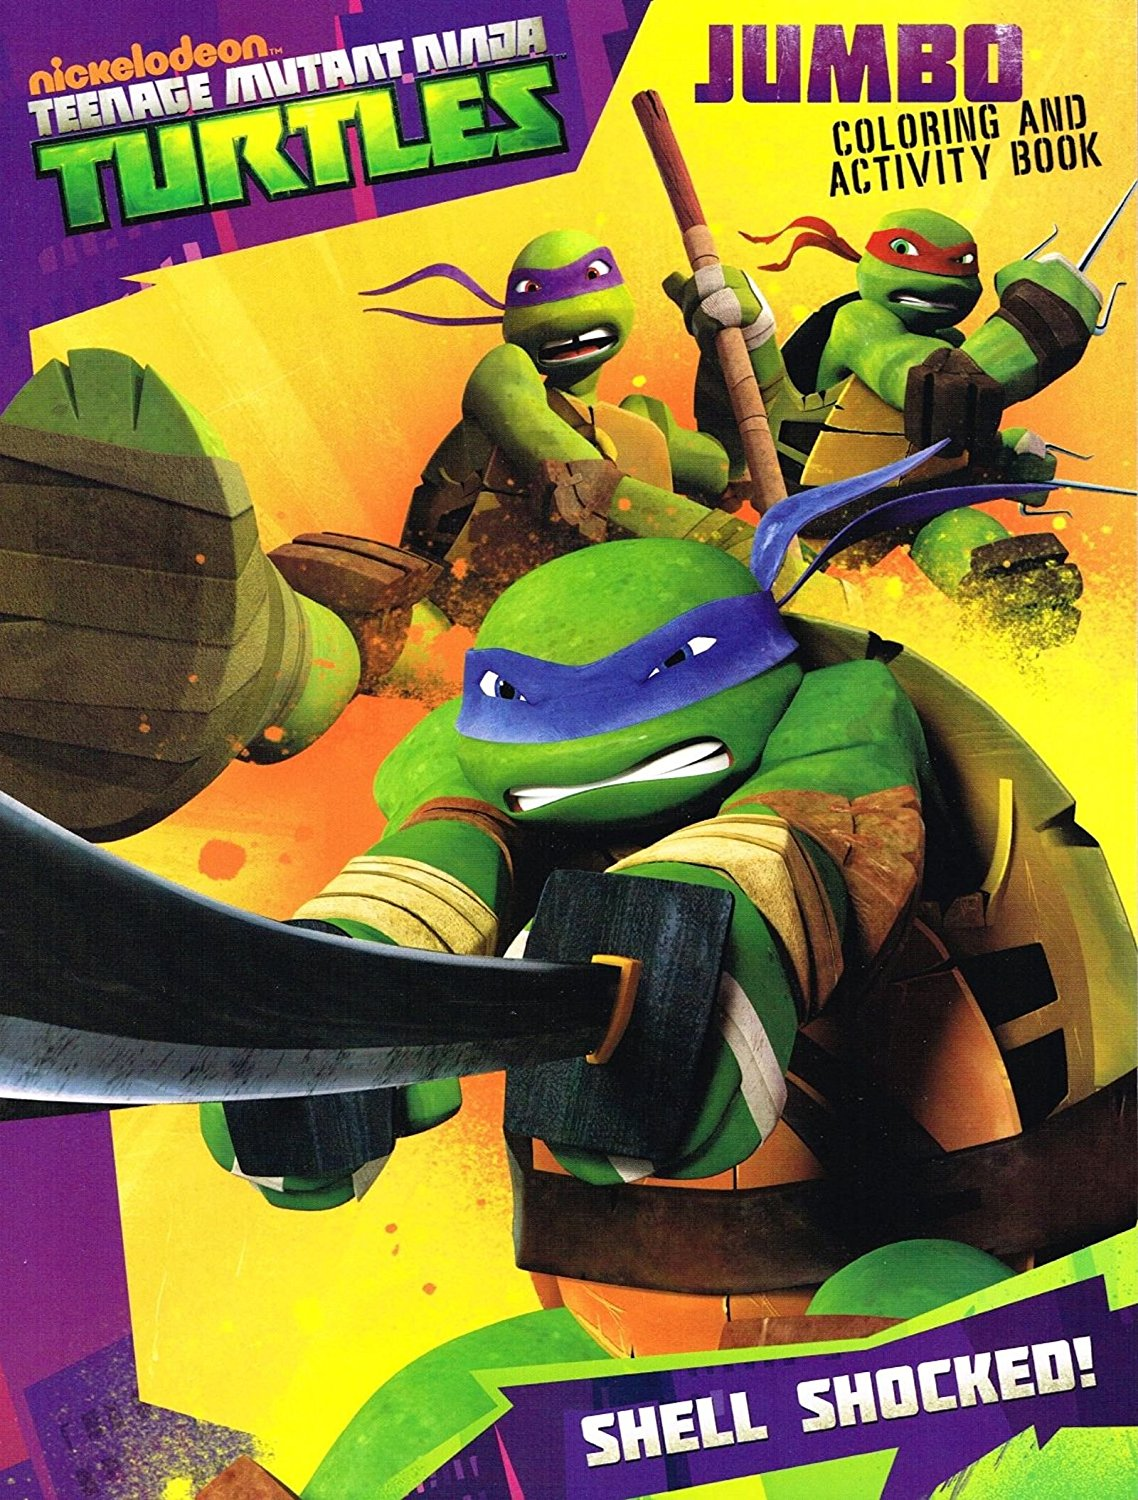 Buy Tmnt Ninja Turtle 96 Pages Coloring And Activity Book